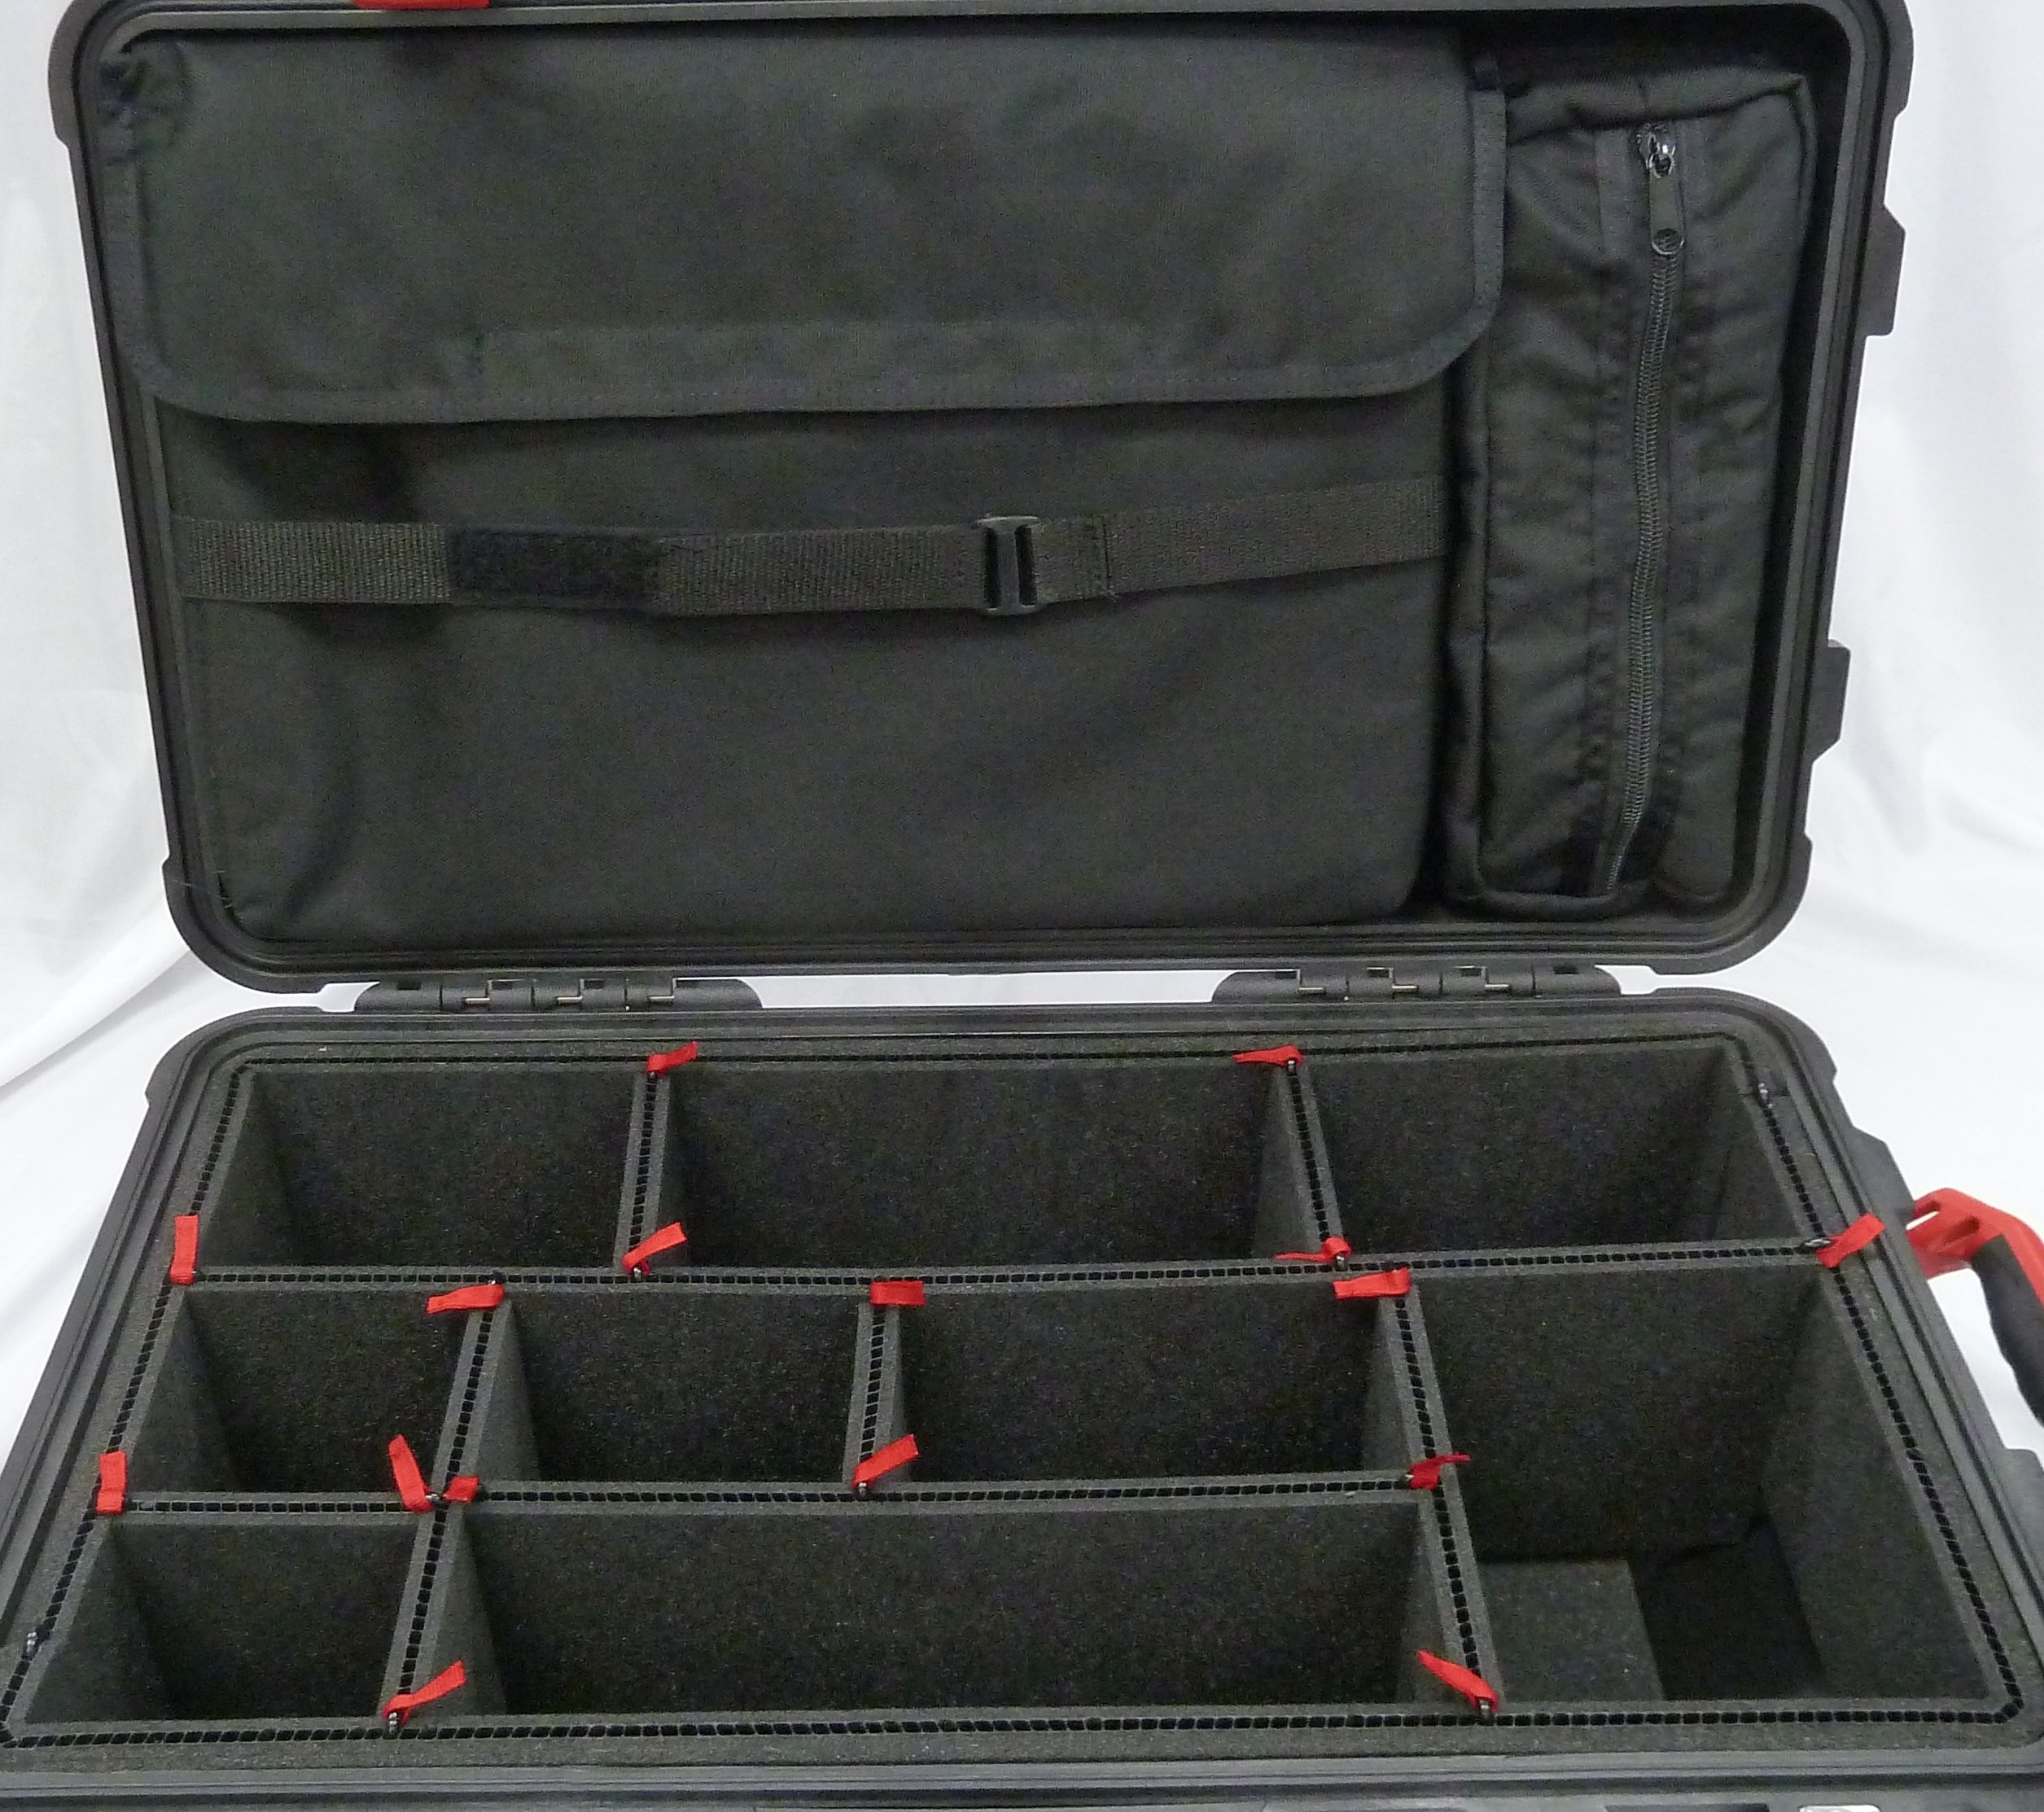 TrekPak Divider System to fit the Pelican 1510 case & 1510SC Computer Lid pouch. by CVPKG & Pelican (Image #6)